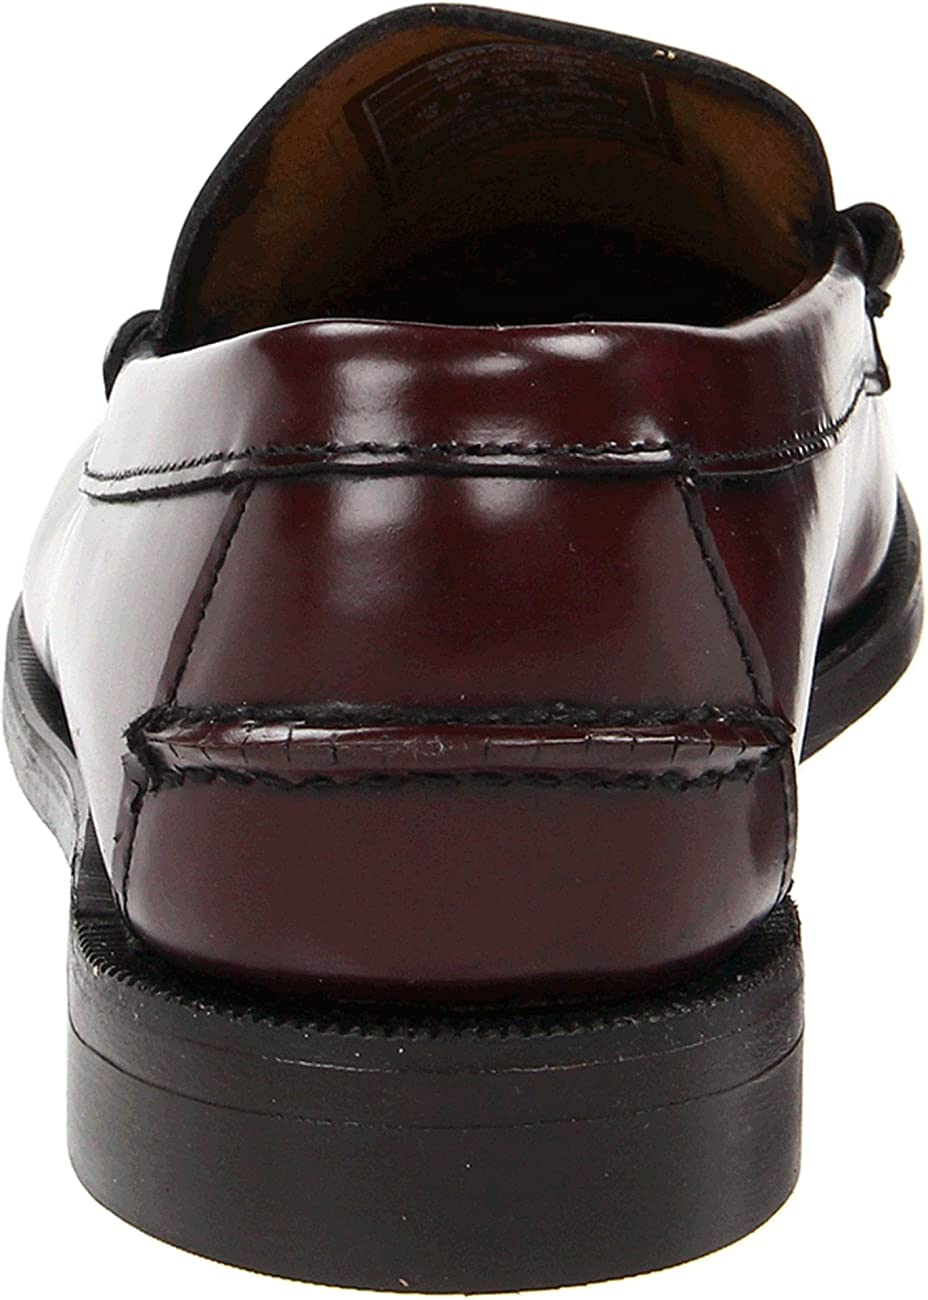 Sebago Men's Classic Leather Loafer 2